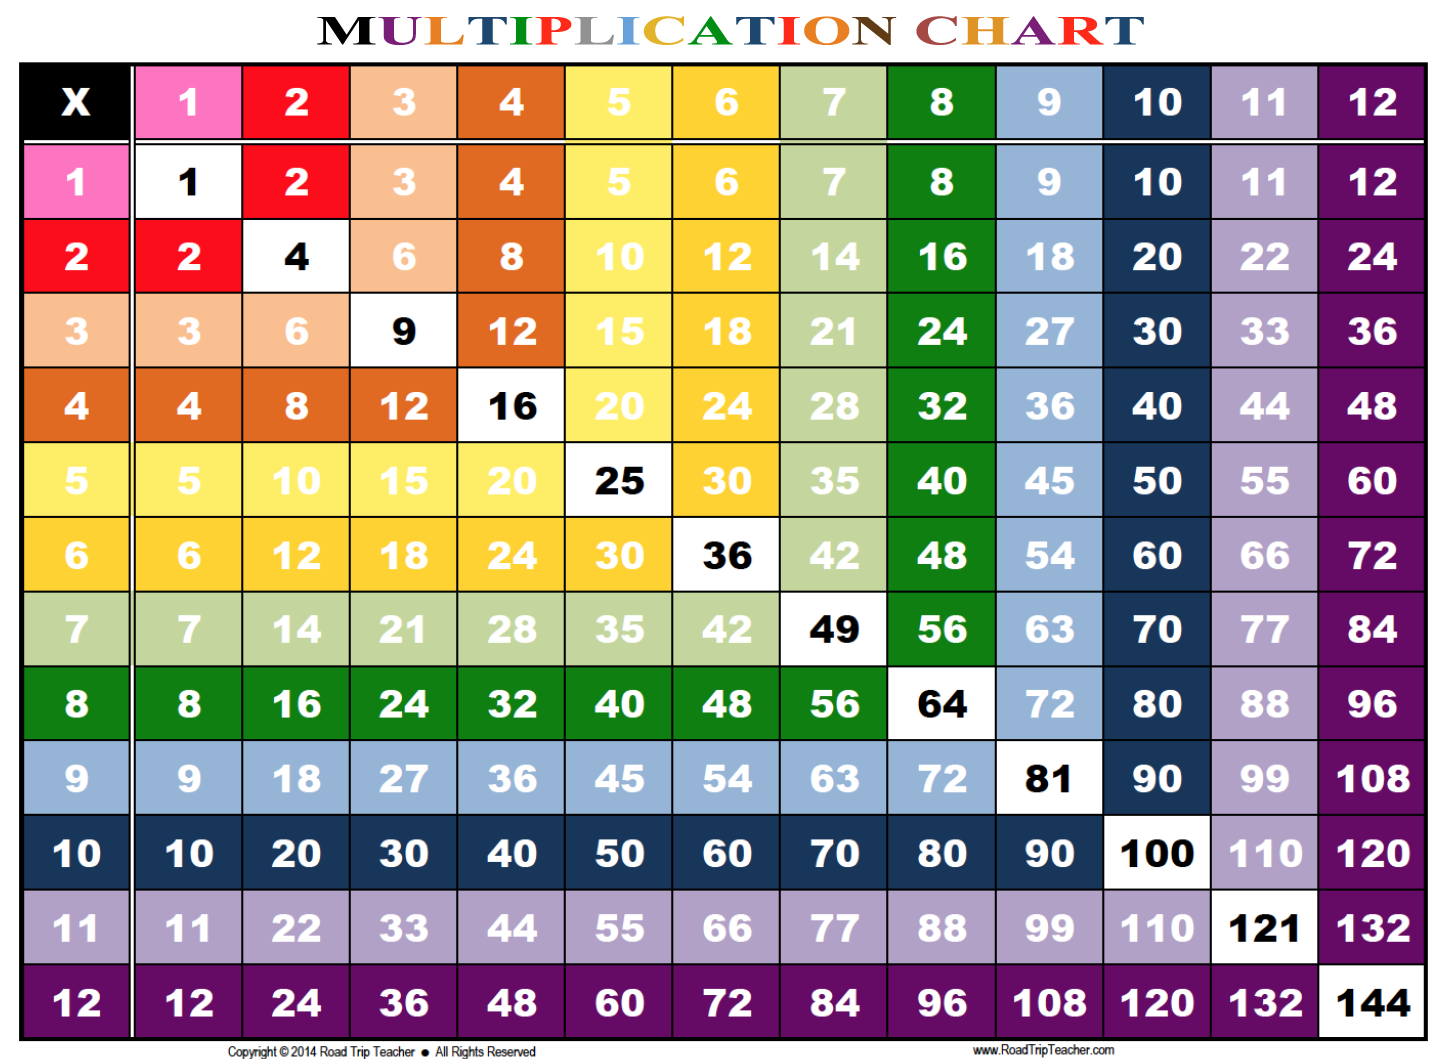 Multiplication Chart 1 12 Printable Multiplication Chart Multiplication Chart Printable Multiplication